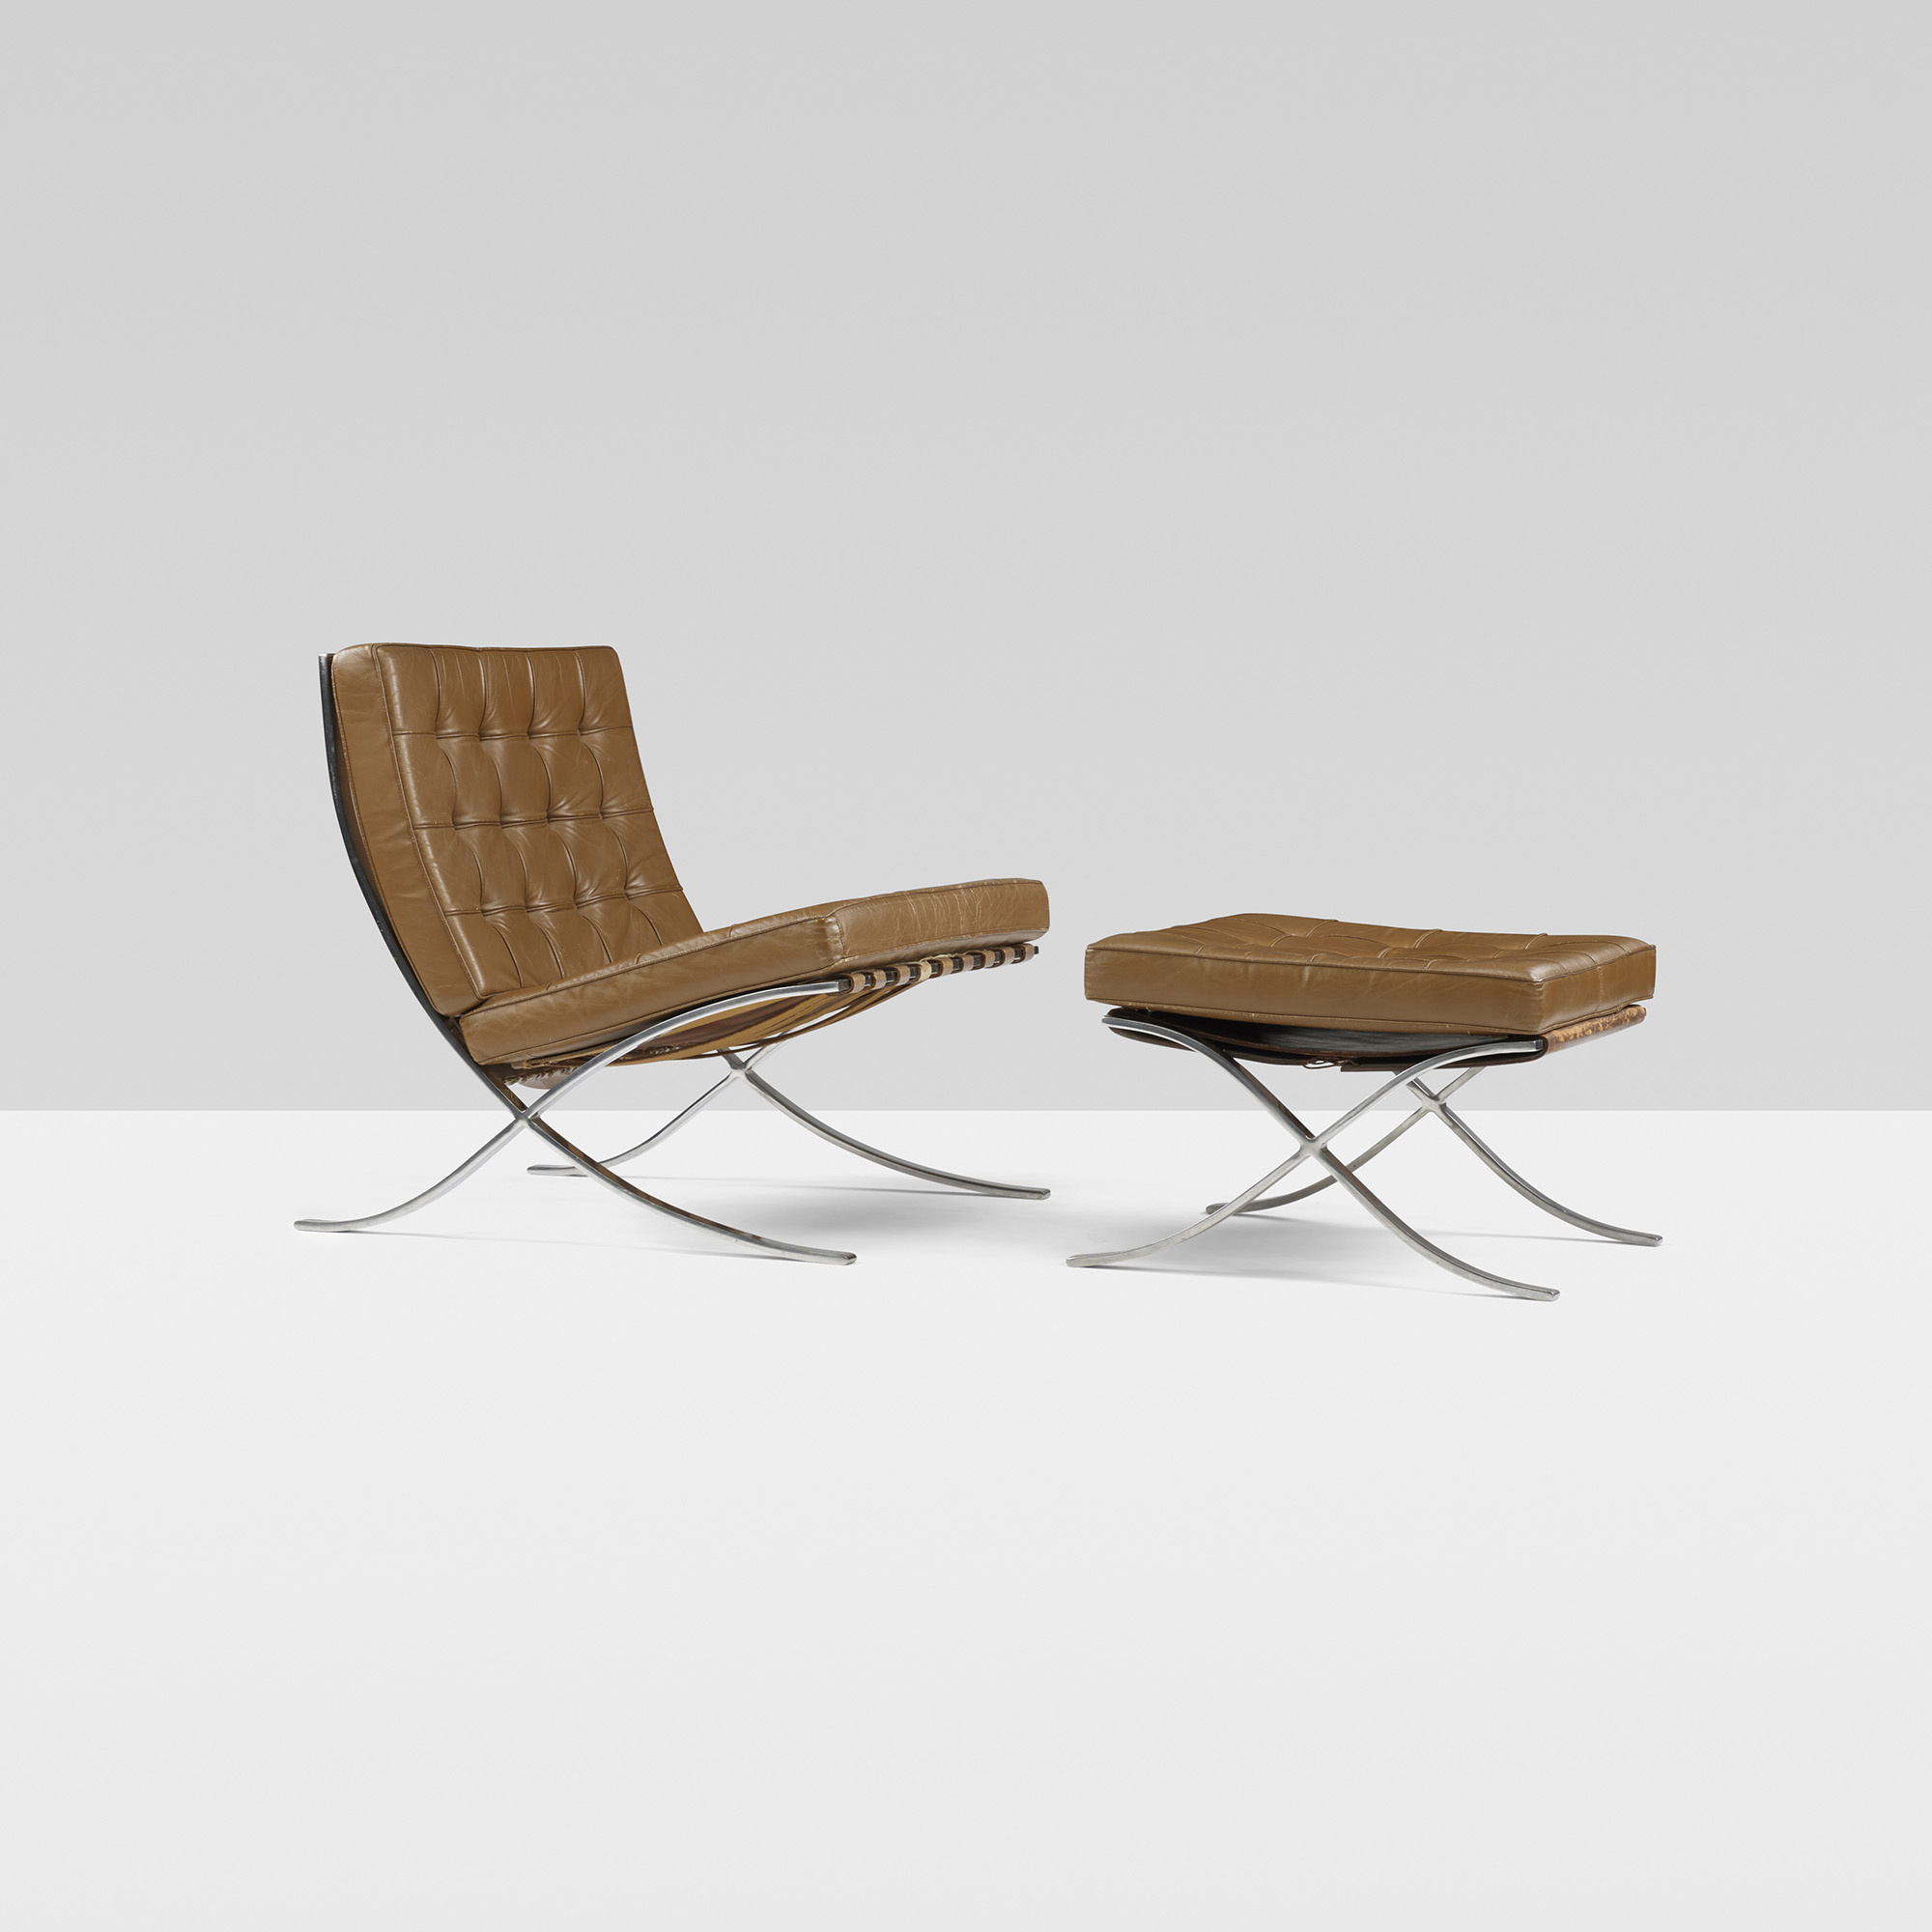 155 Ludwig Mies van der Rohe pair of Barcelona chair and